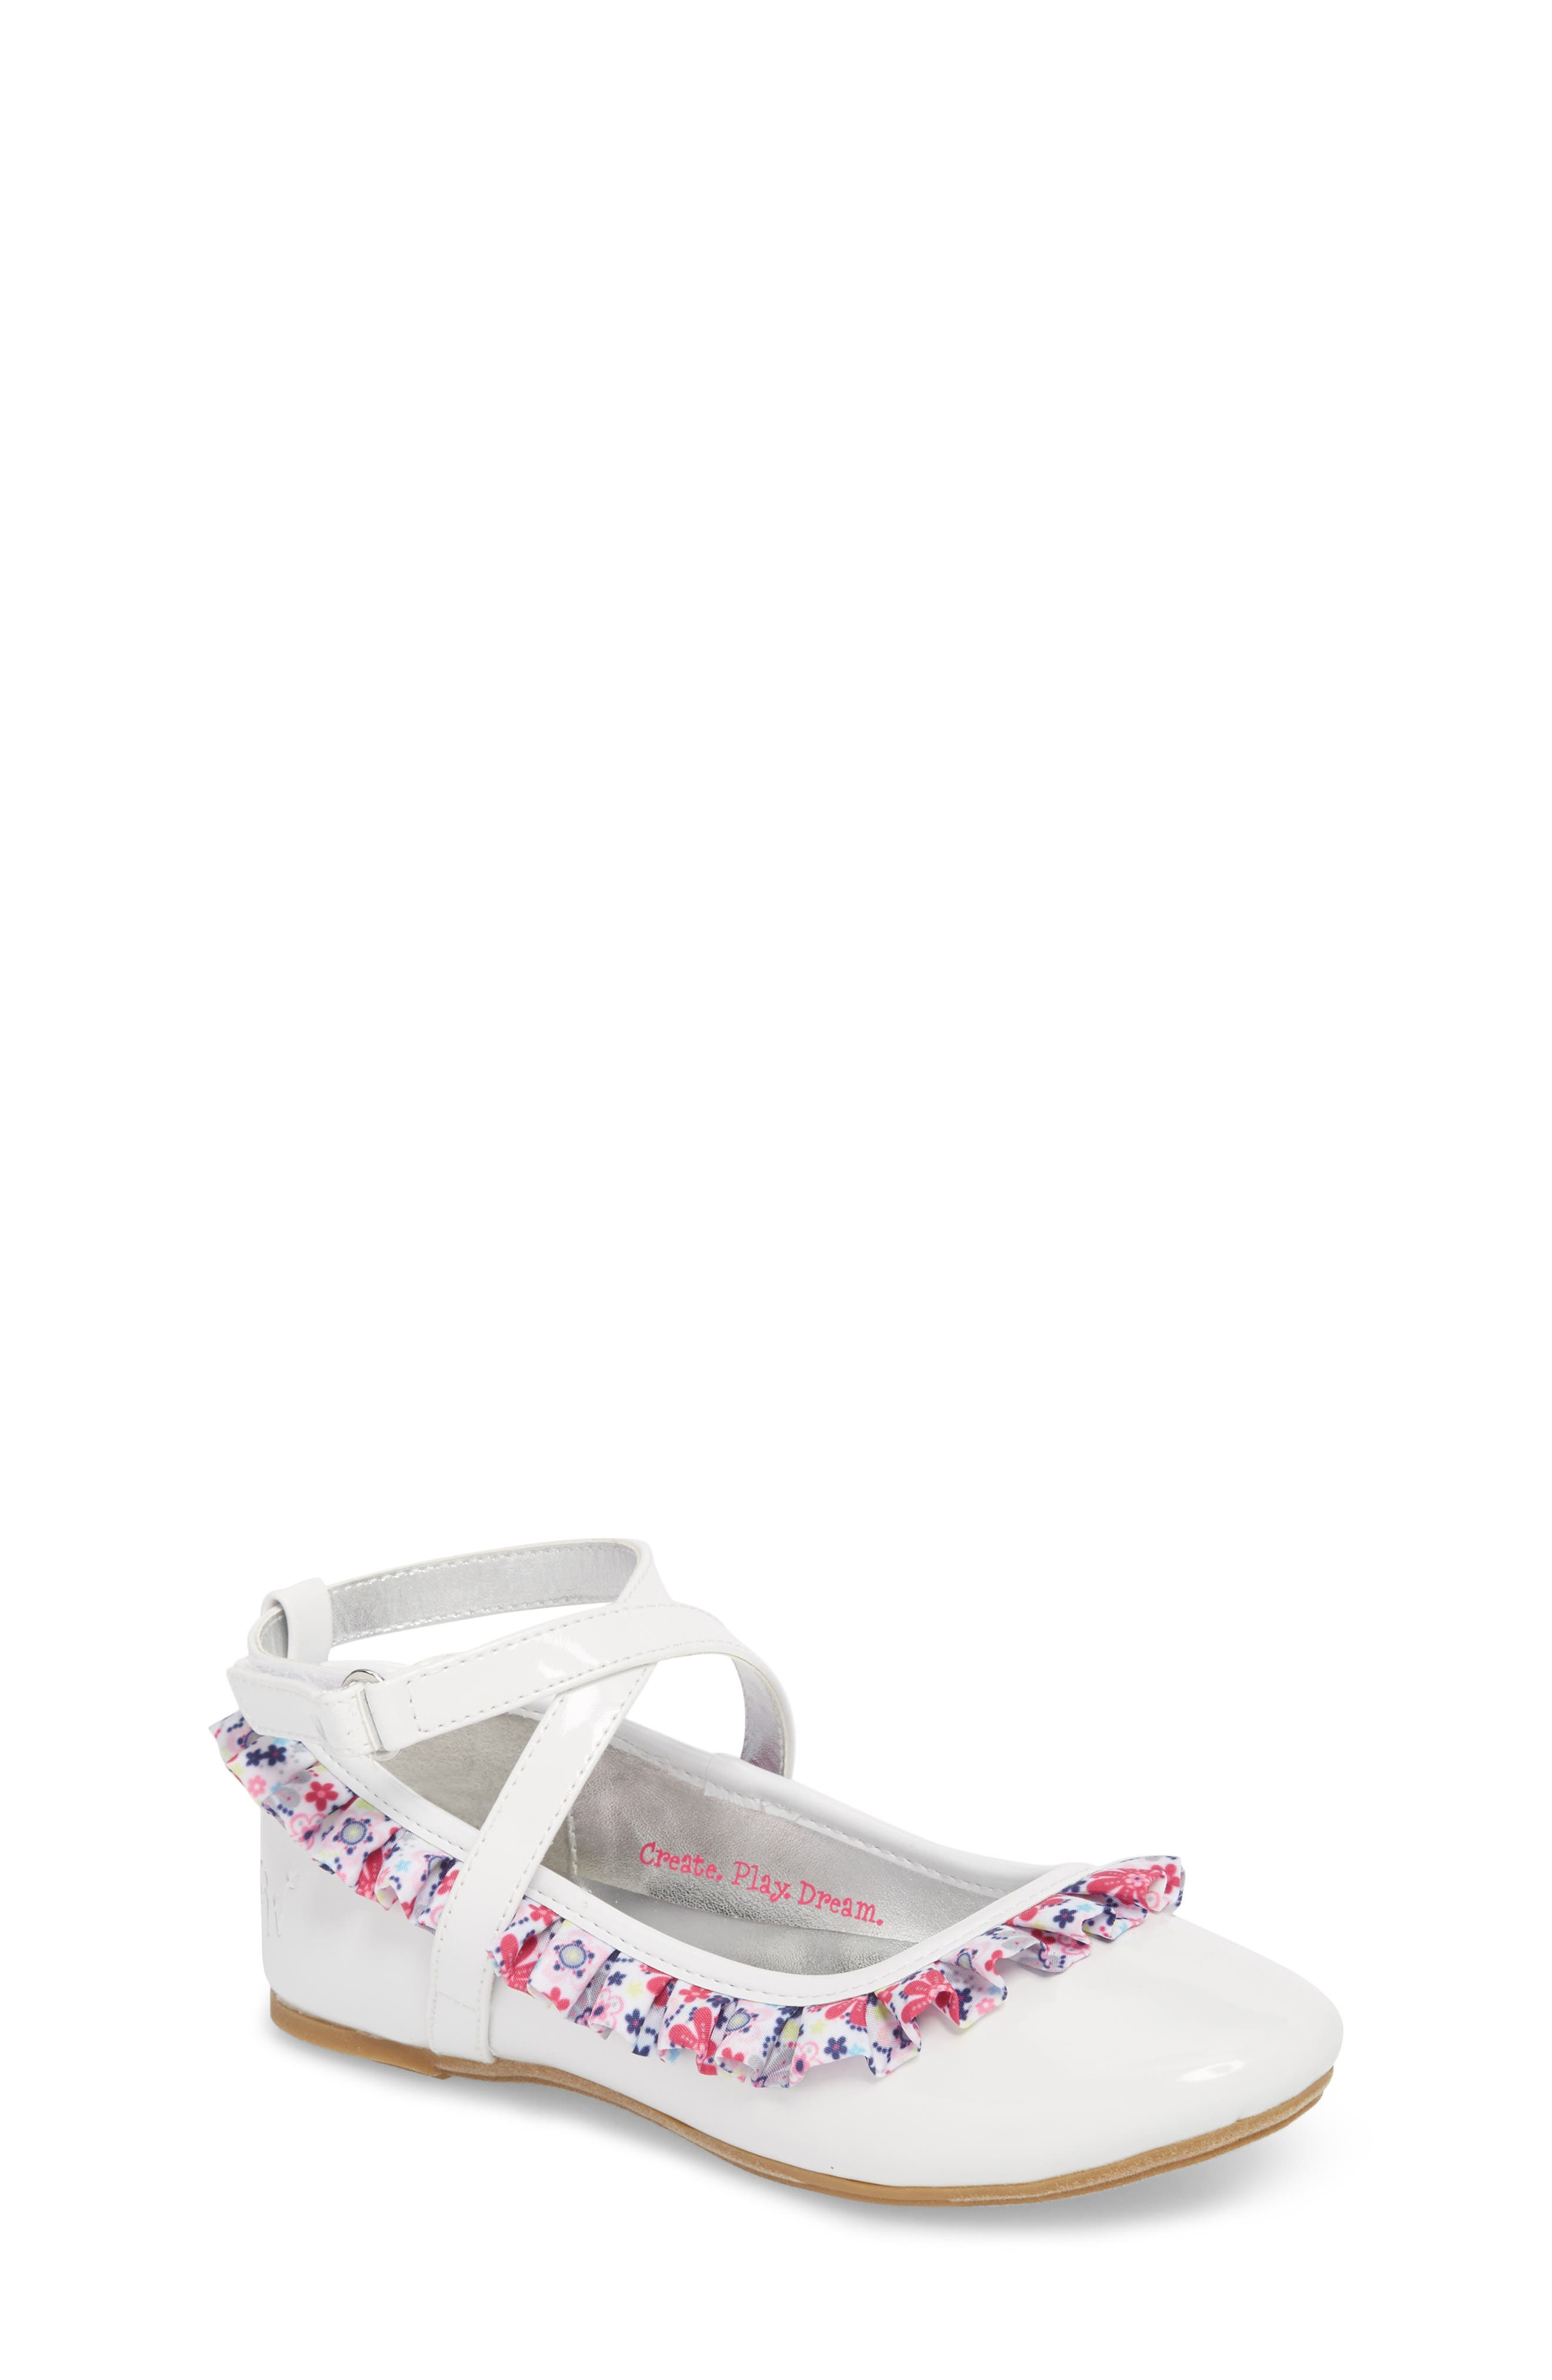 Kendall Ruffle Ballet Flat,                         Main,                         color, White